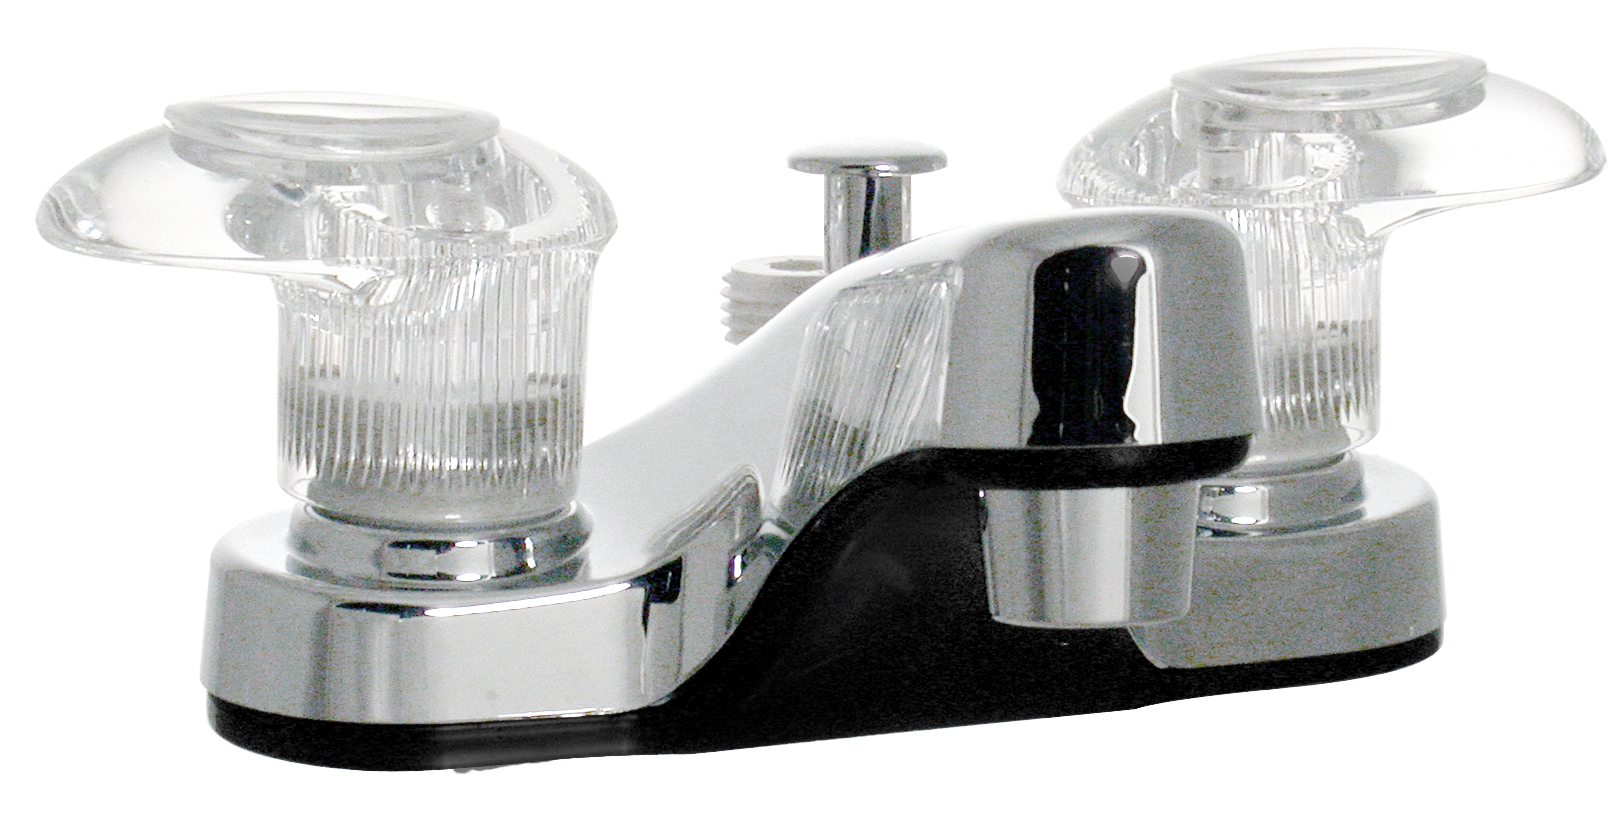 PF222341 Phoenix Products Faucet Used For Lavatory